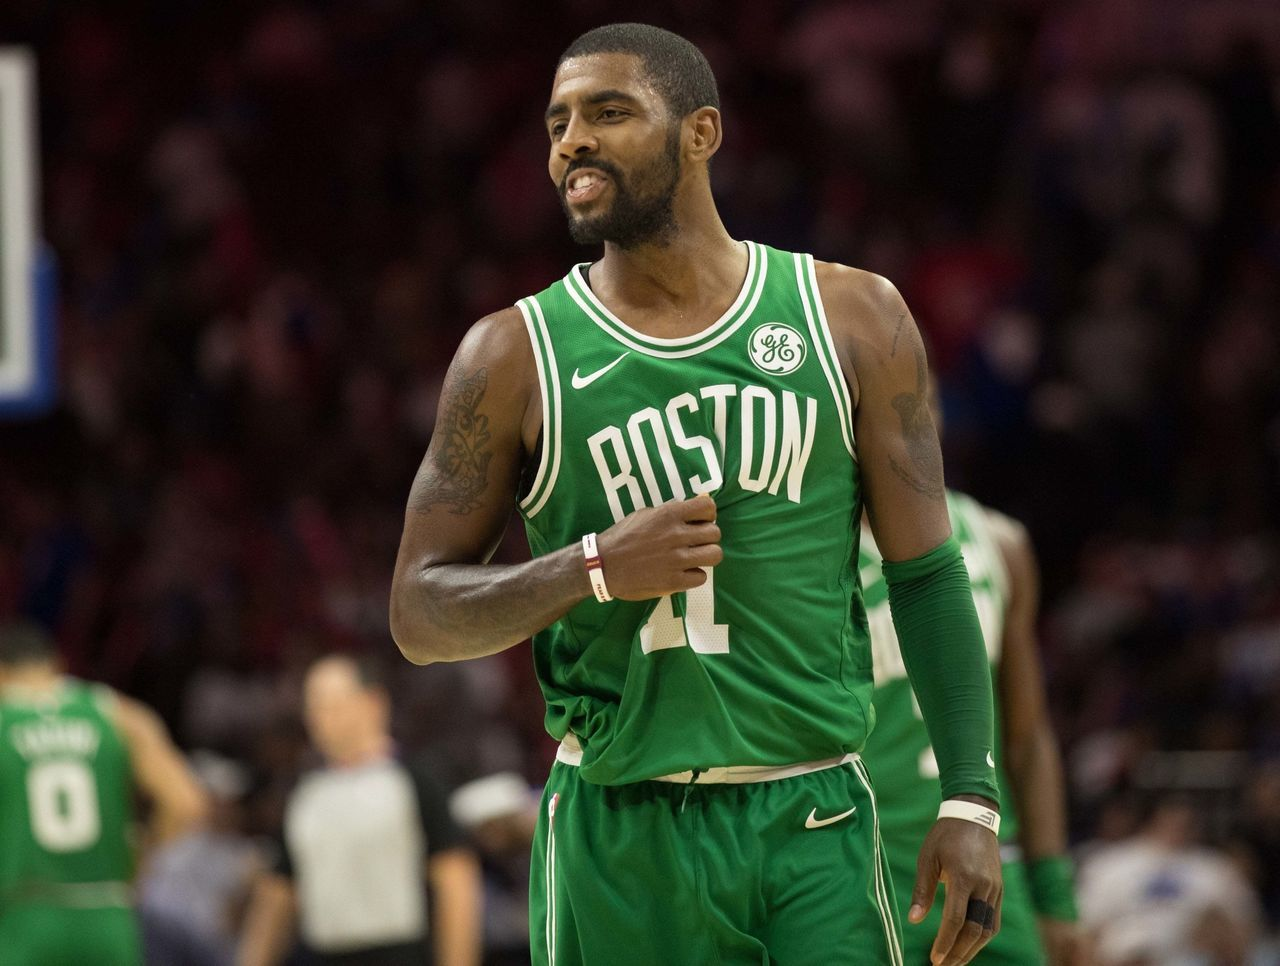 Celtics' Kyrie Irving doesn't regret telling heckler to 'suck his d**k,' but apologizes to children